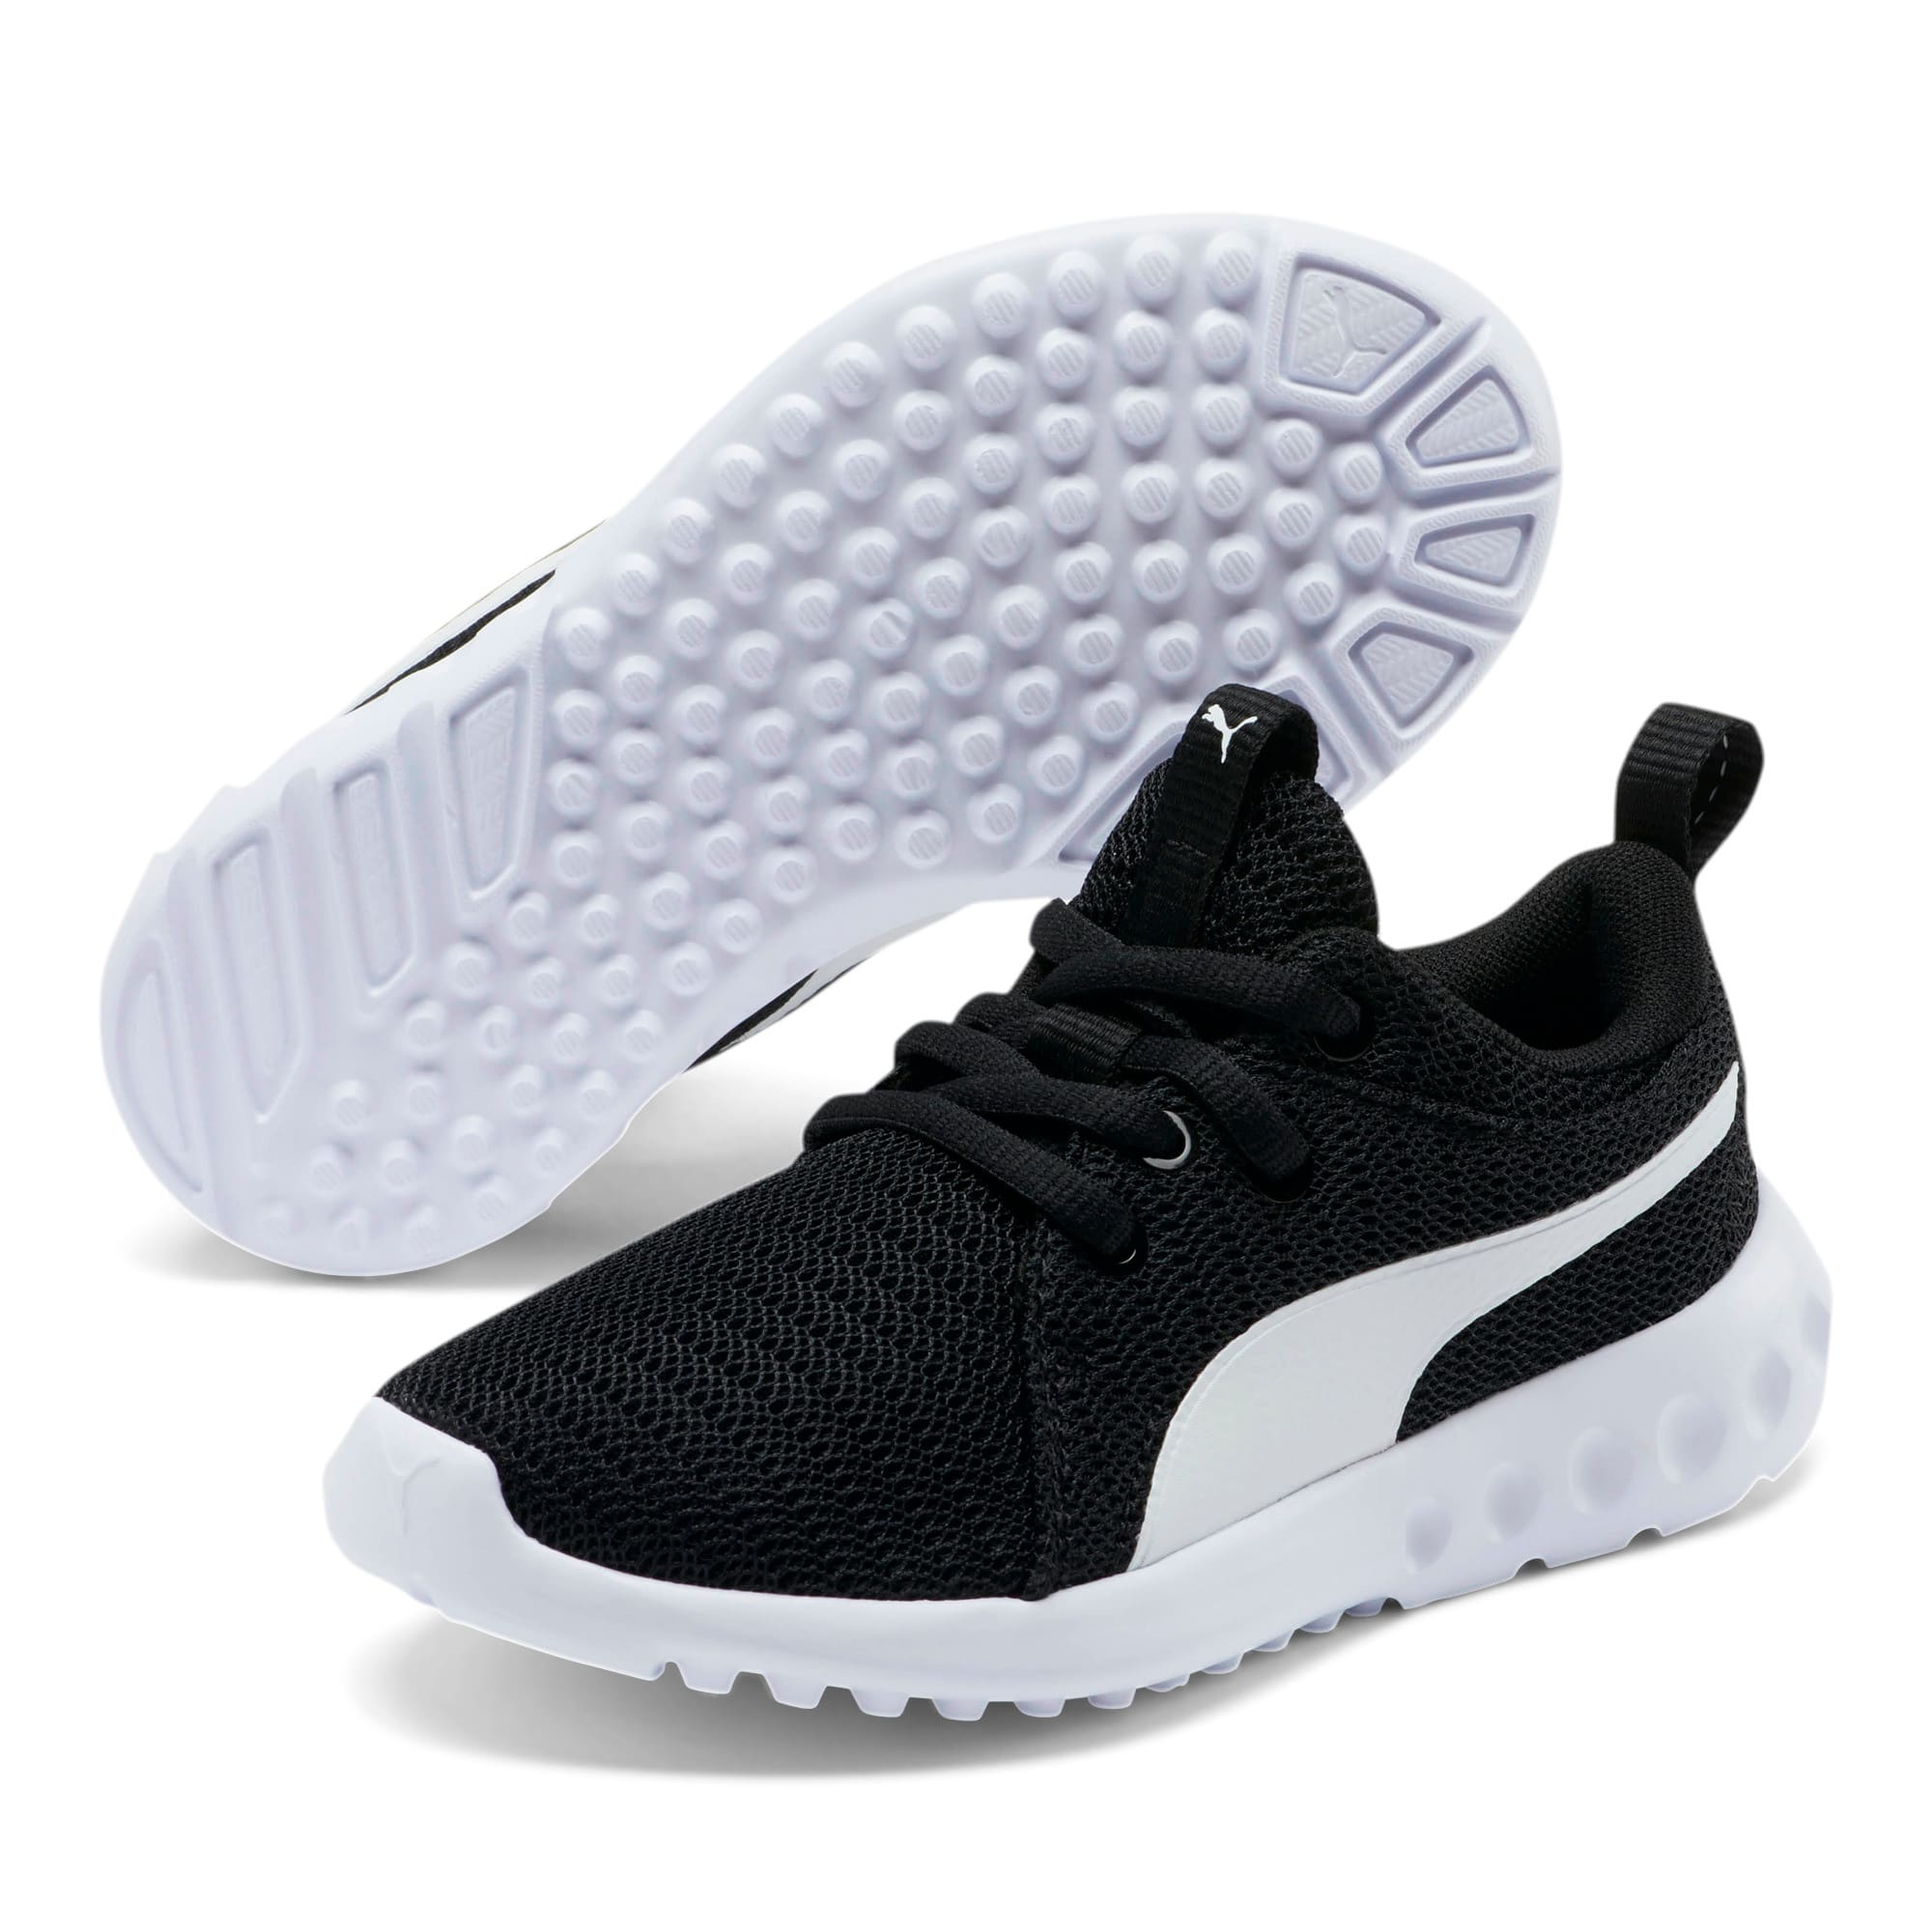 Thumbnail 2 of Carson 2 AC Little Kids' Shoes, Puma Black-Puma White, medium